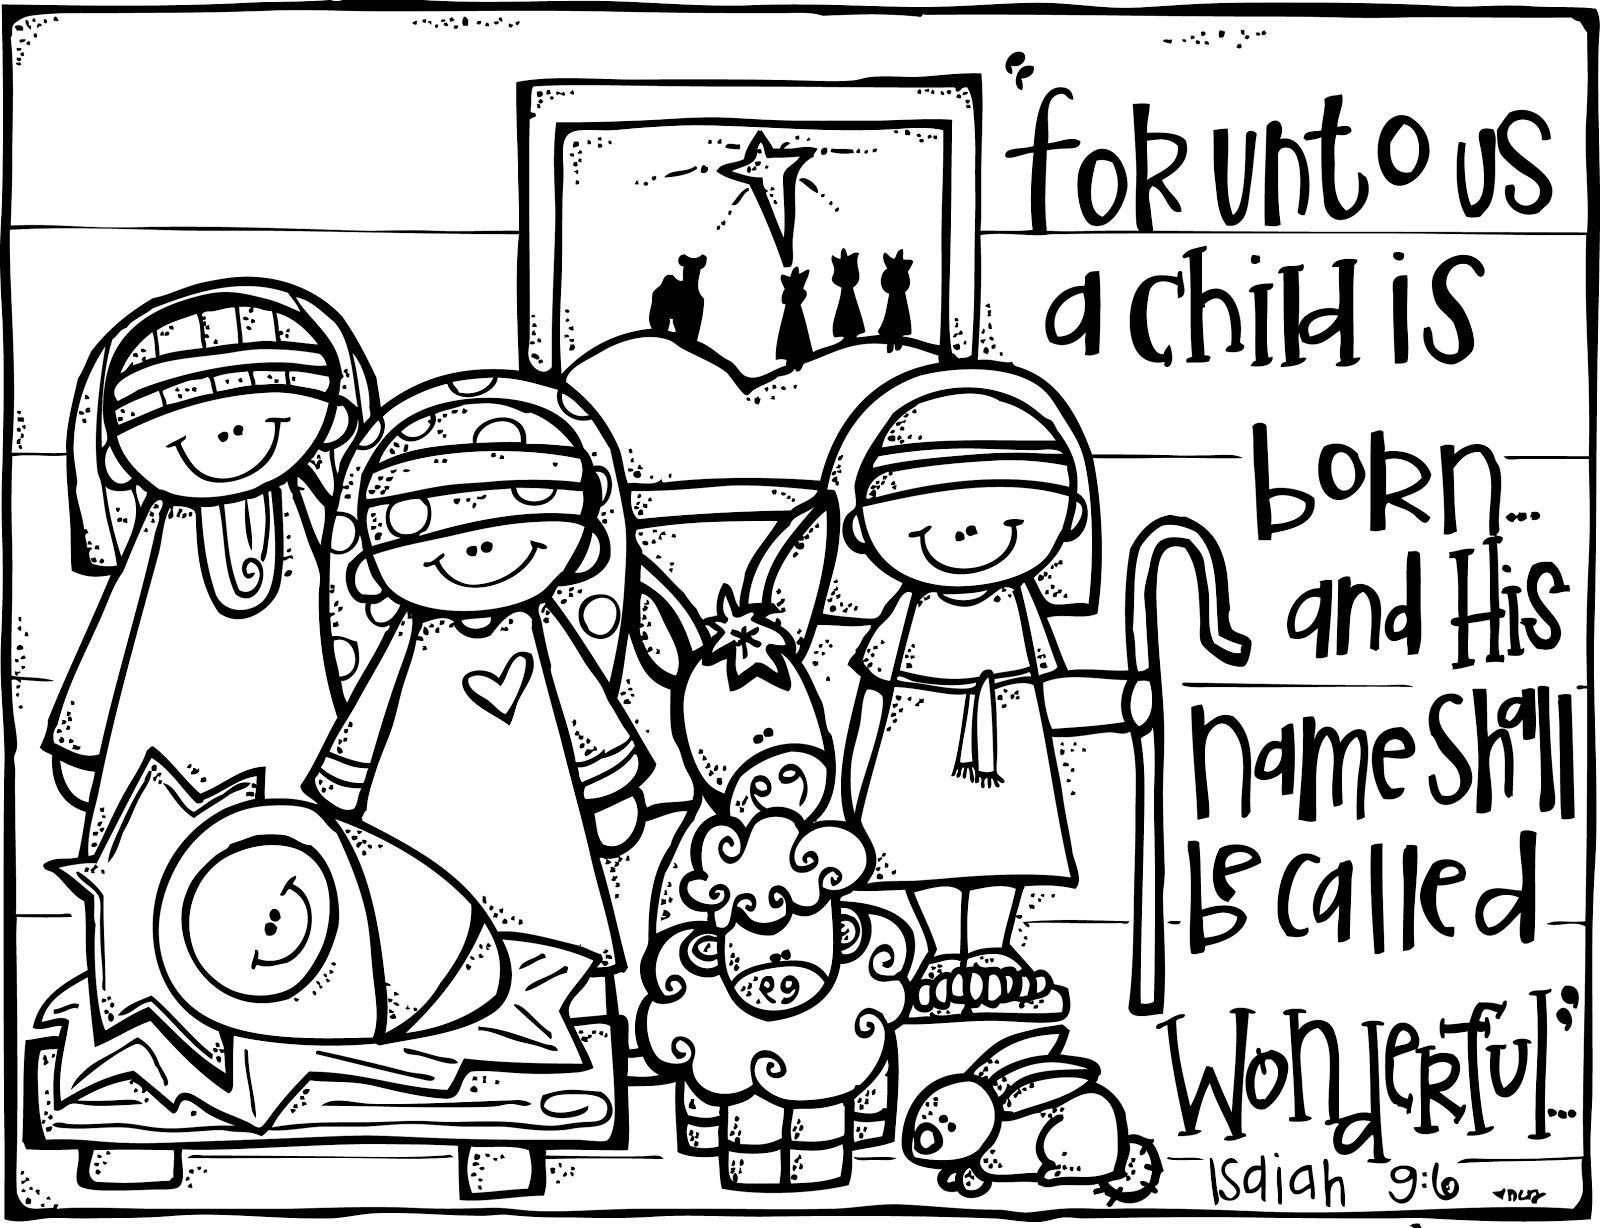 preschool christian coloring pages pin by yescoloring coloring pages on free faithful bible pages preschool christian coloring